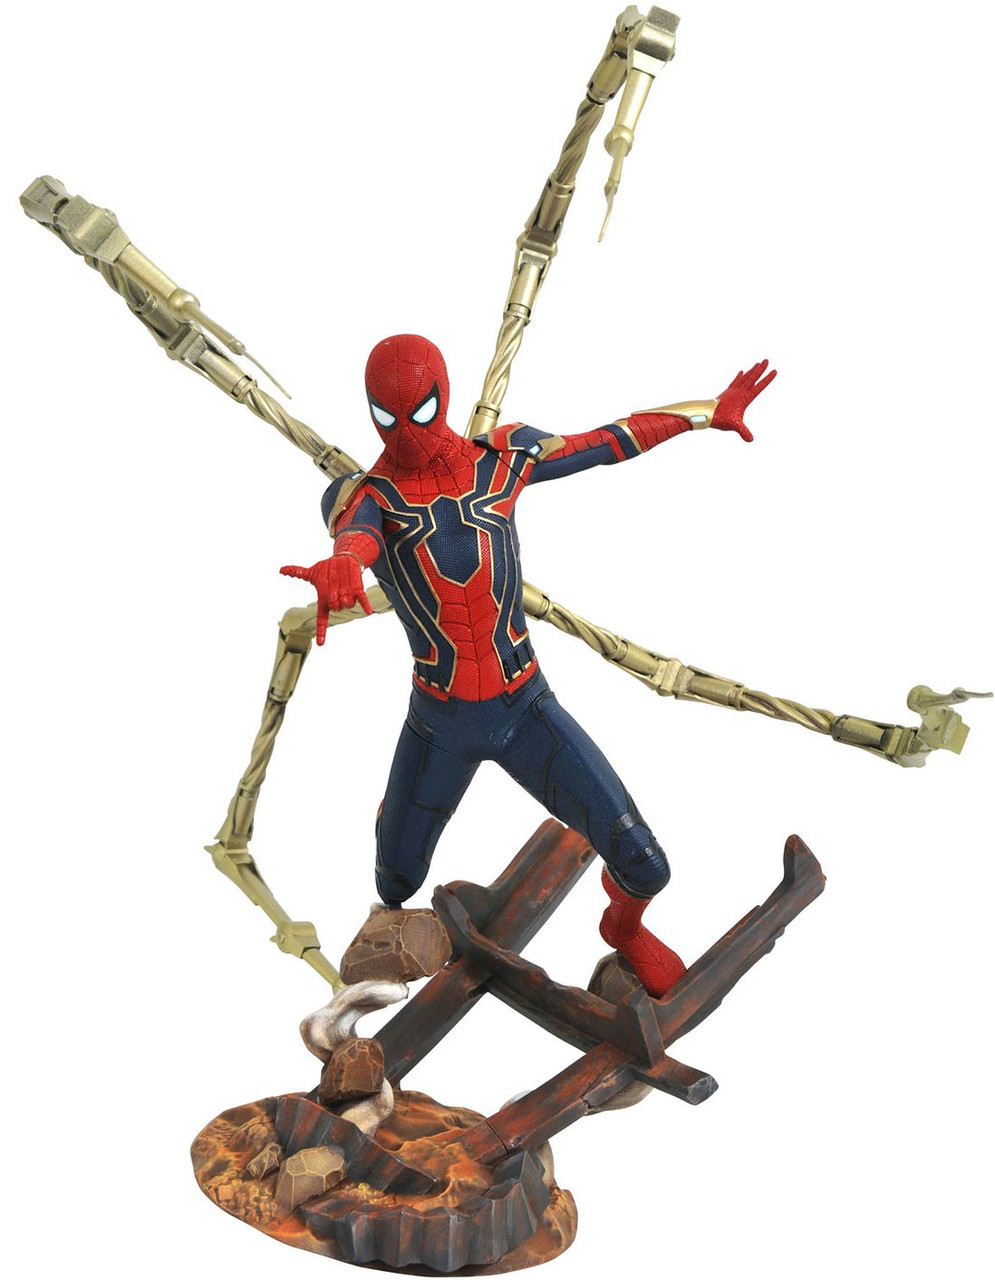 Marvel Avengers Infinity War Iron Spider With Led Light Pvc Action Figure Collectible Model Toy Toys & Hobbies